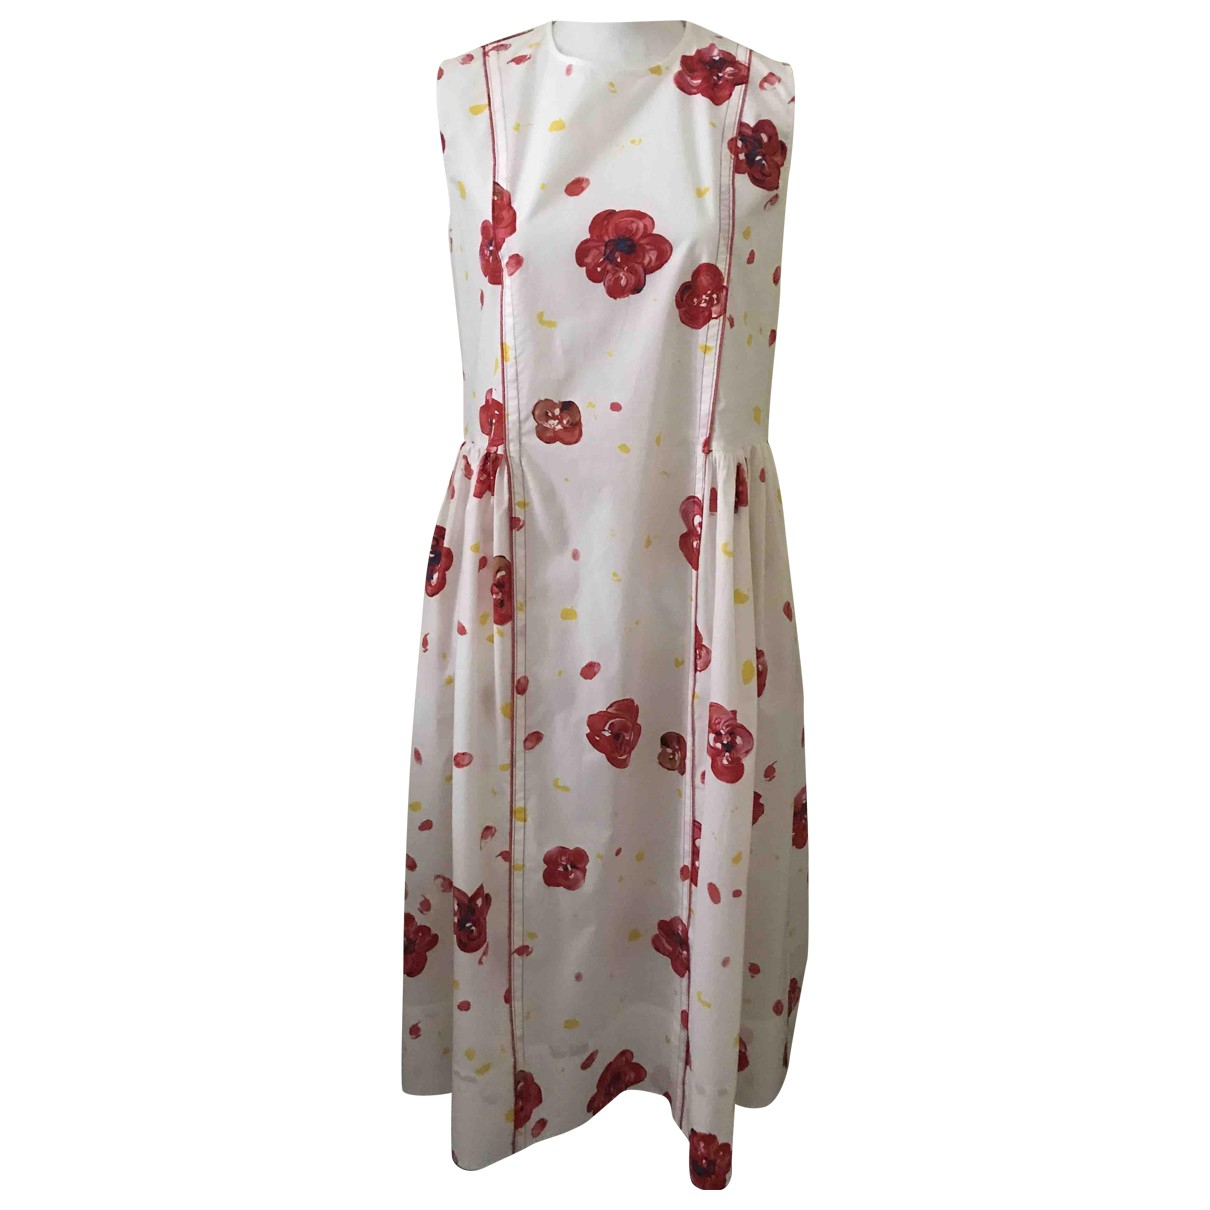 Marni \N White Cotton dress for Women 40 IT